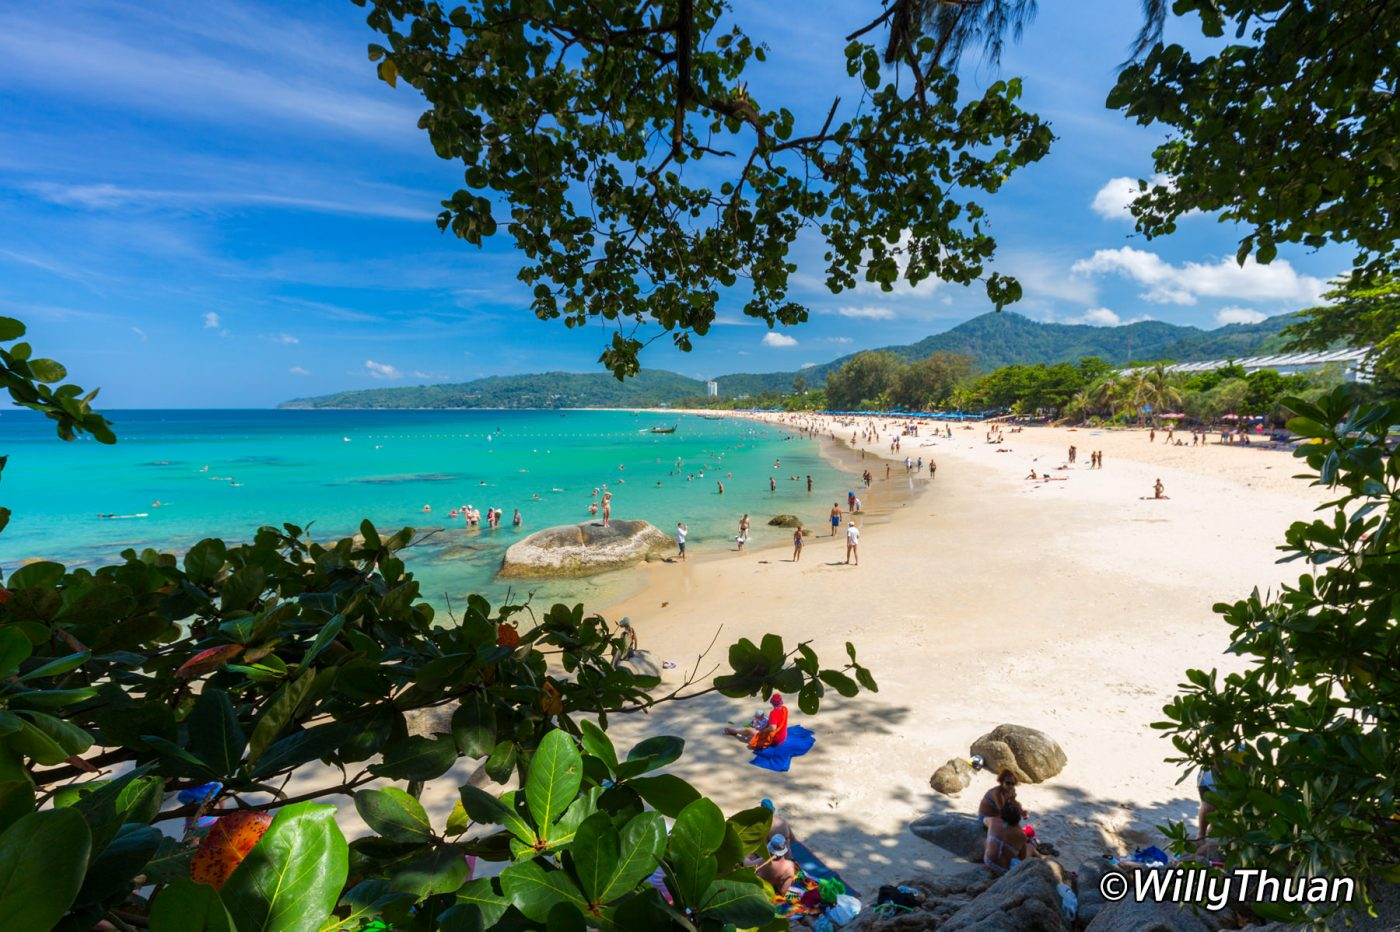 Karon Beach - What to Do in Karon Beach?